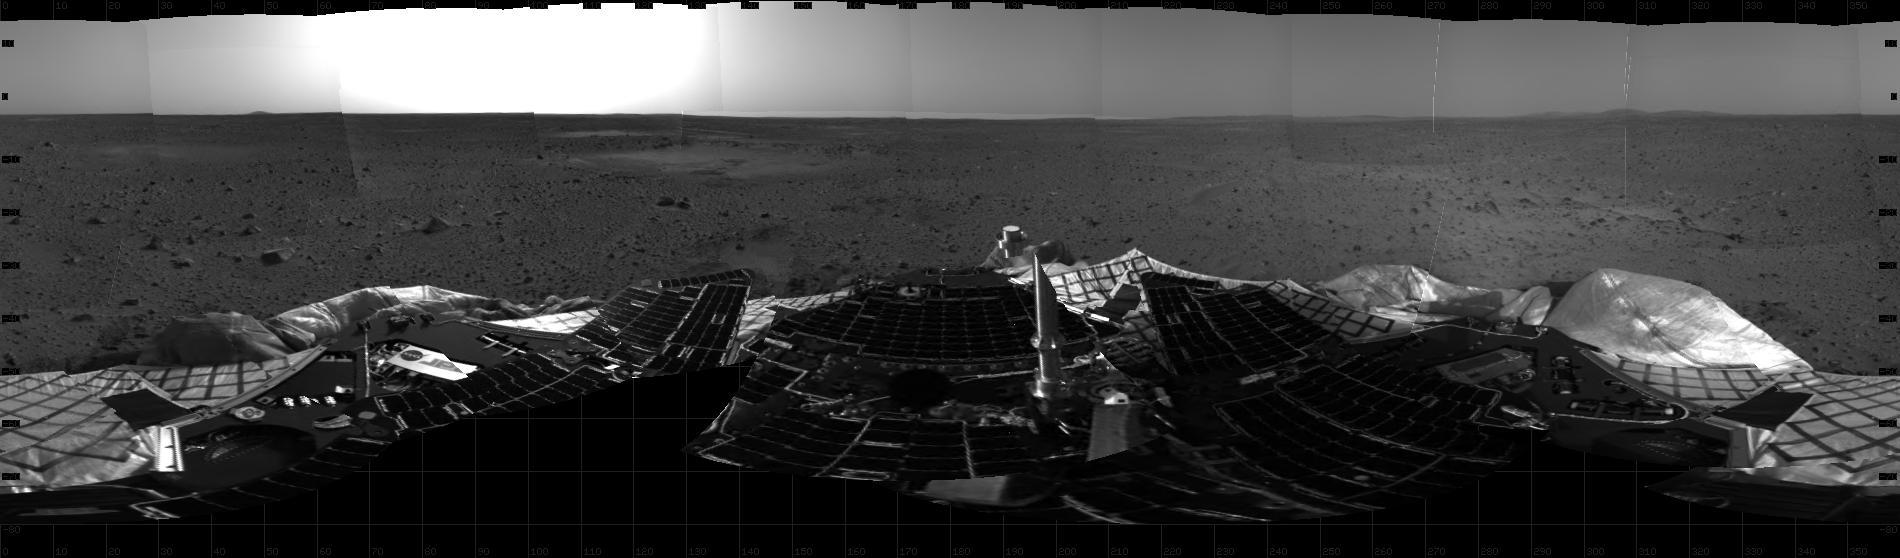 nasa mars rover landing today - photo #25